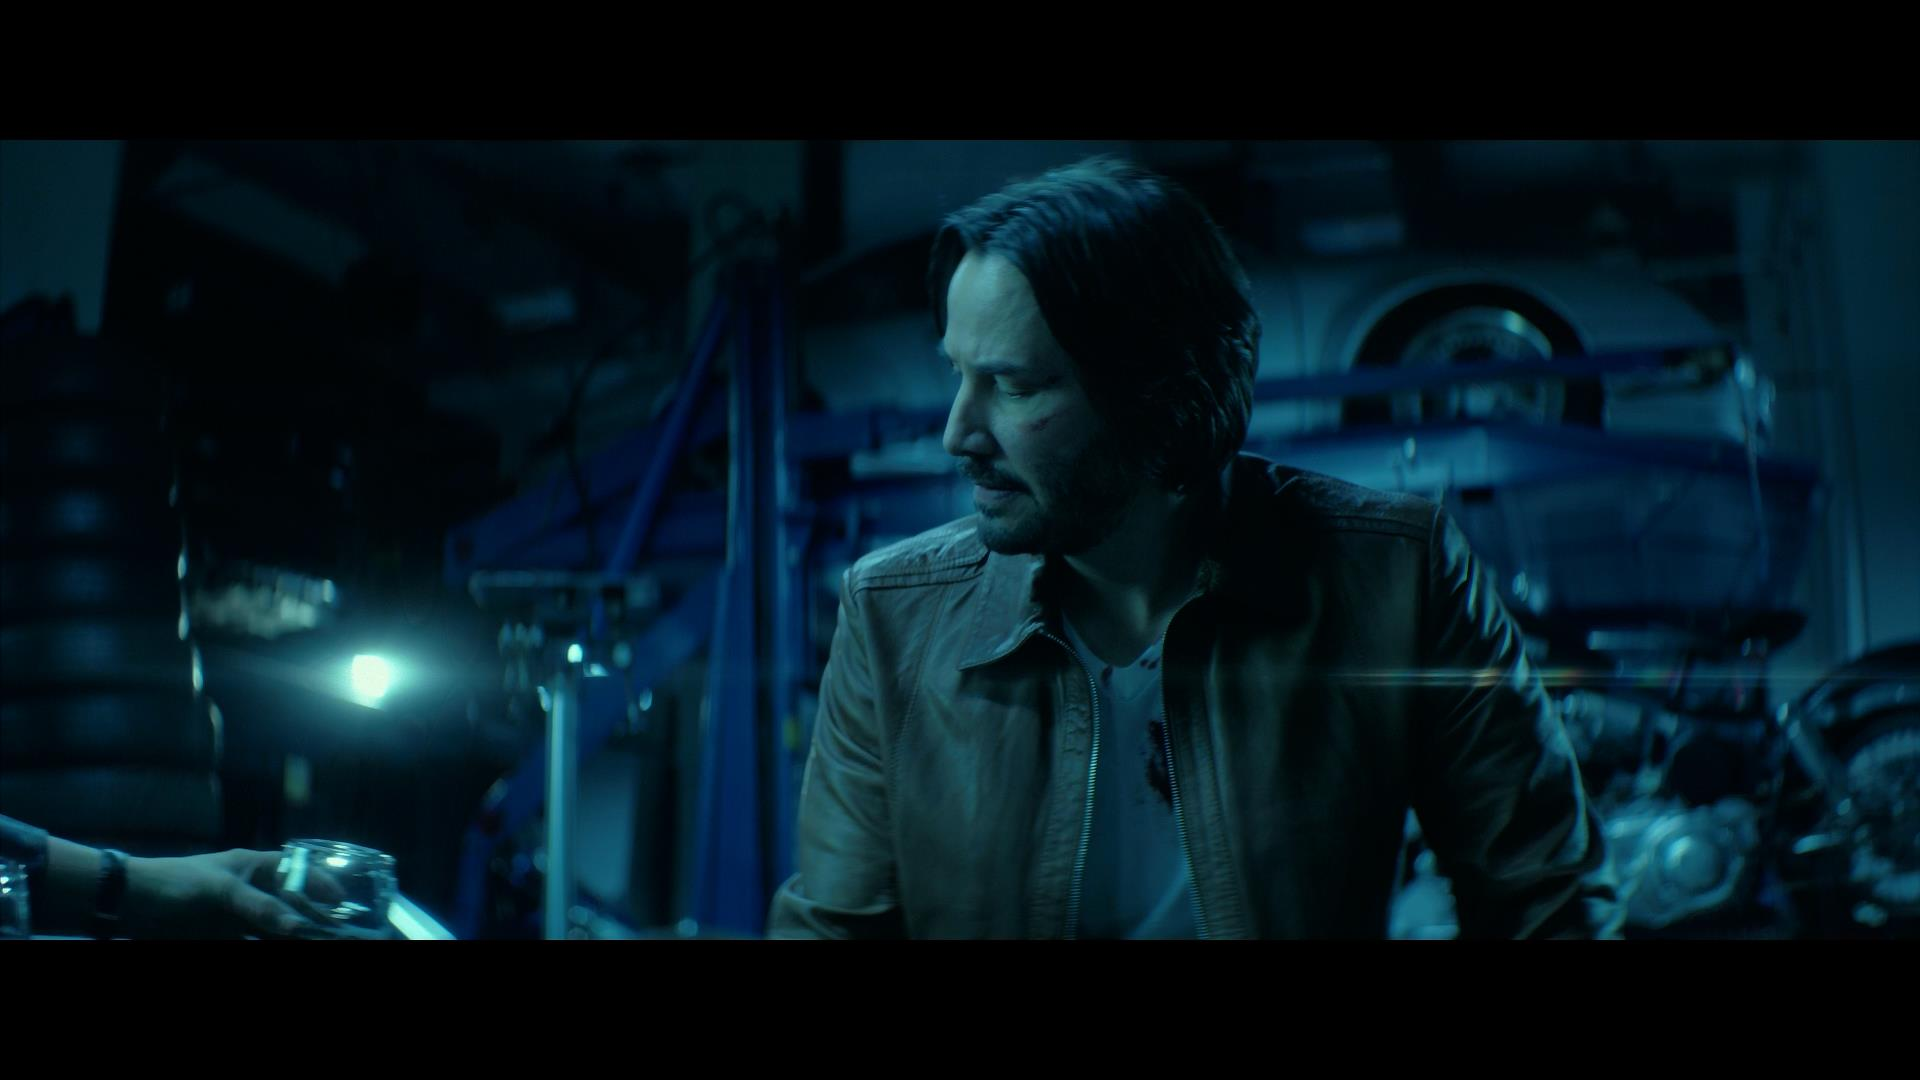 https://i2.wp.com/cdn.highdefdigest.com/uploads/2015/01/24/johnwick1.jpg